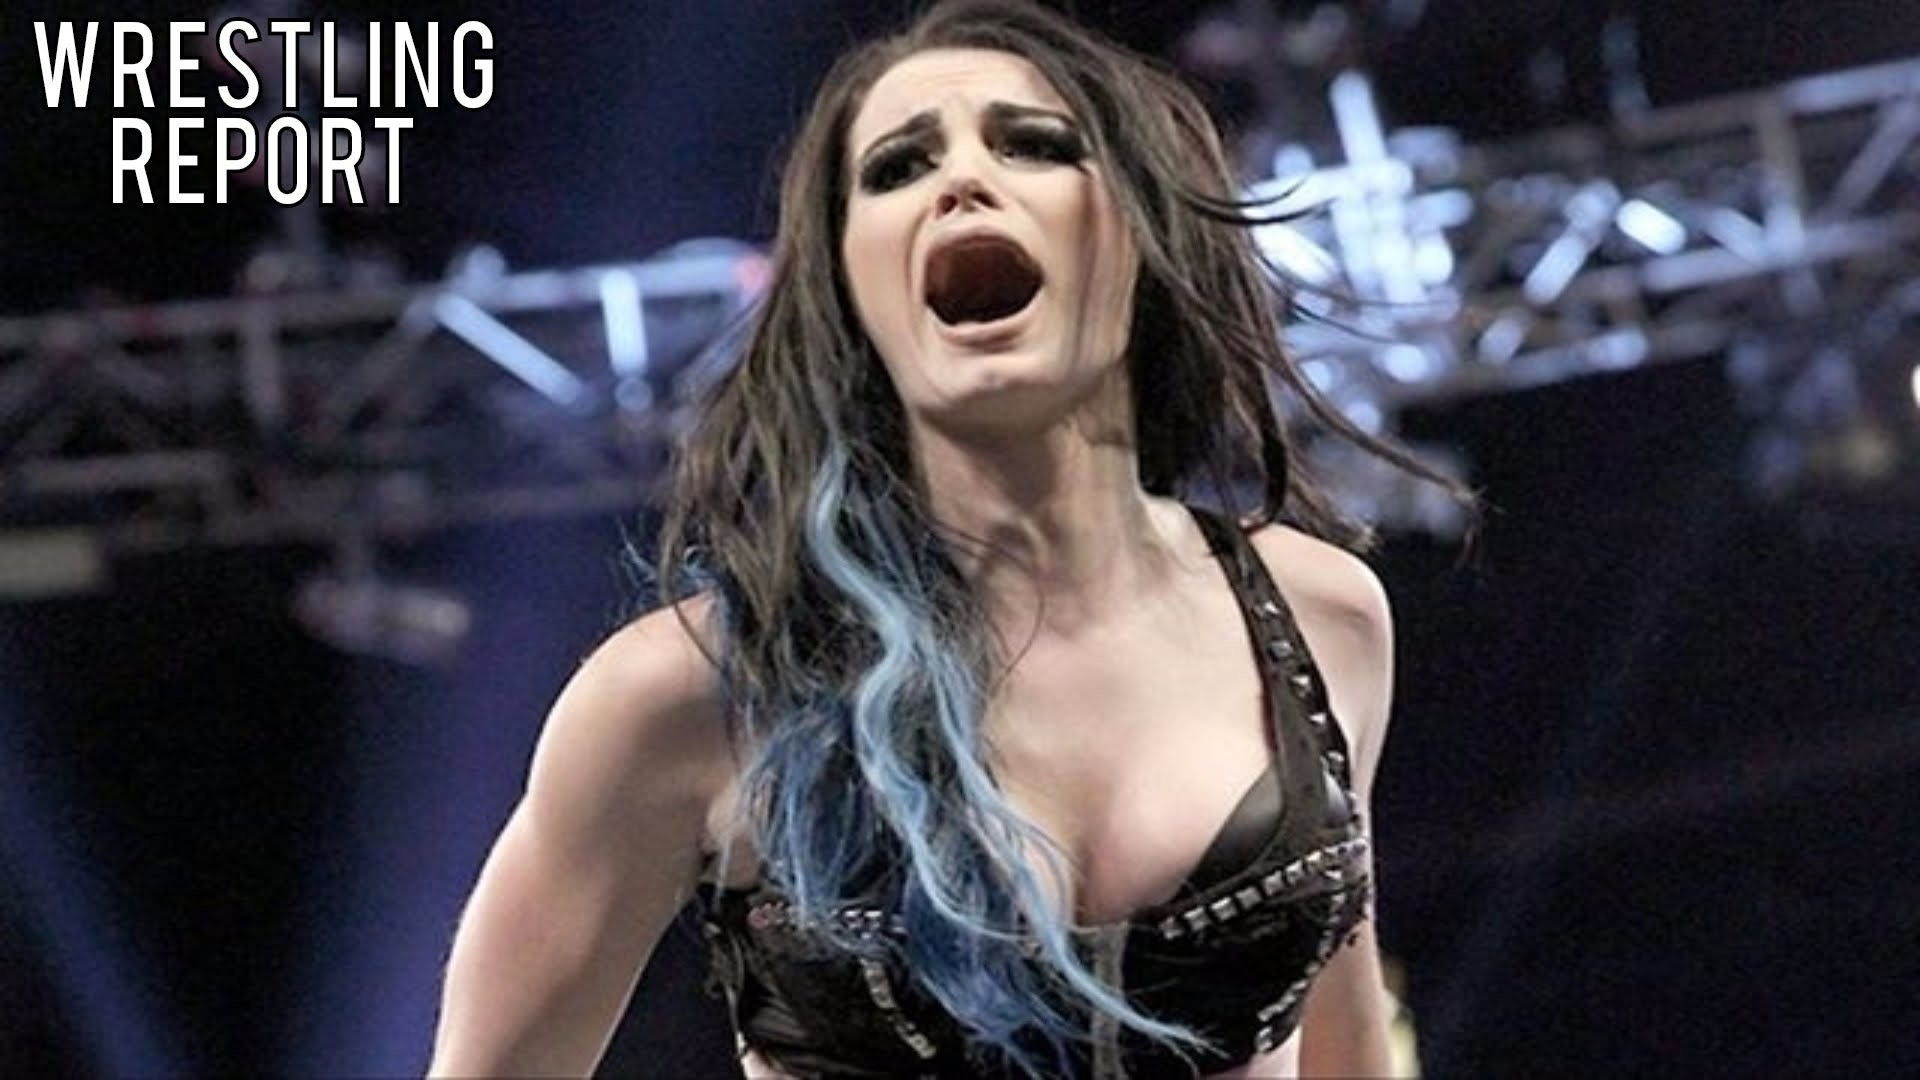 1920x1080 Paige Suspended by WWE, Vince McMahon Sells $30 Million in WWE Shares -  Wrestling Report